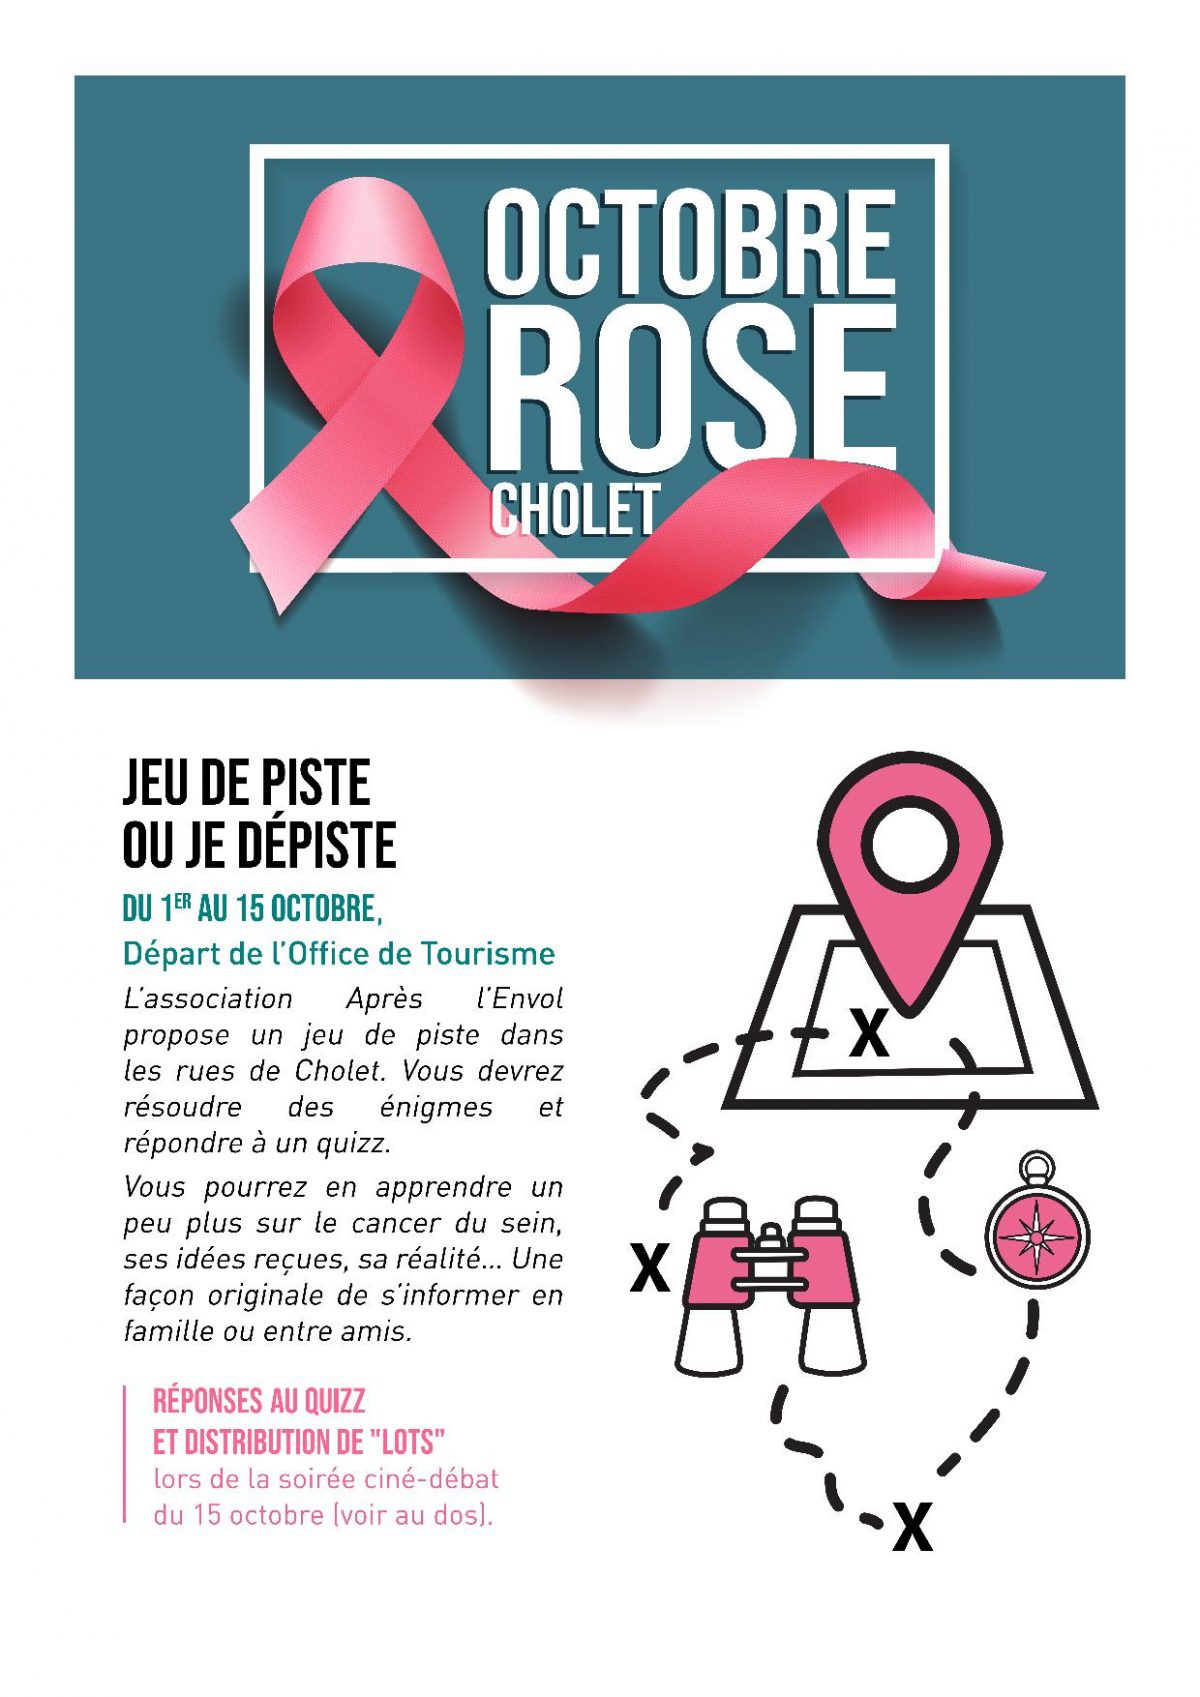 #Octobre rose 2020